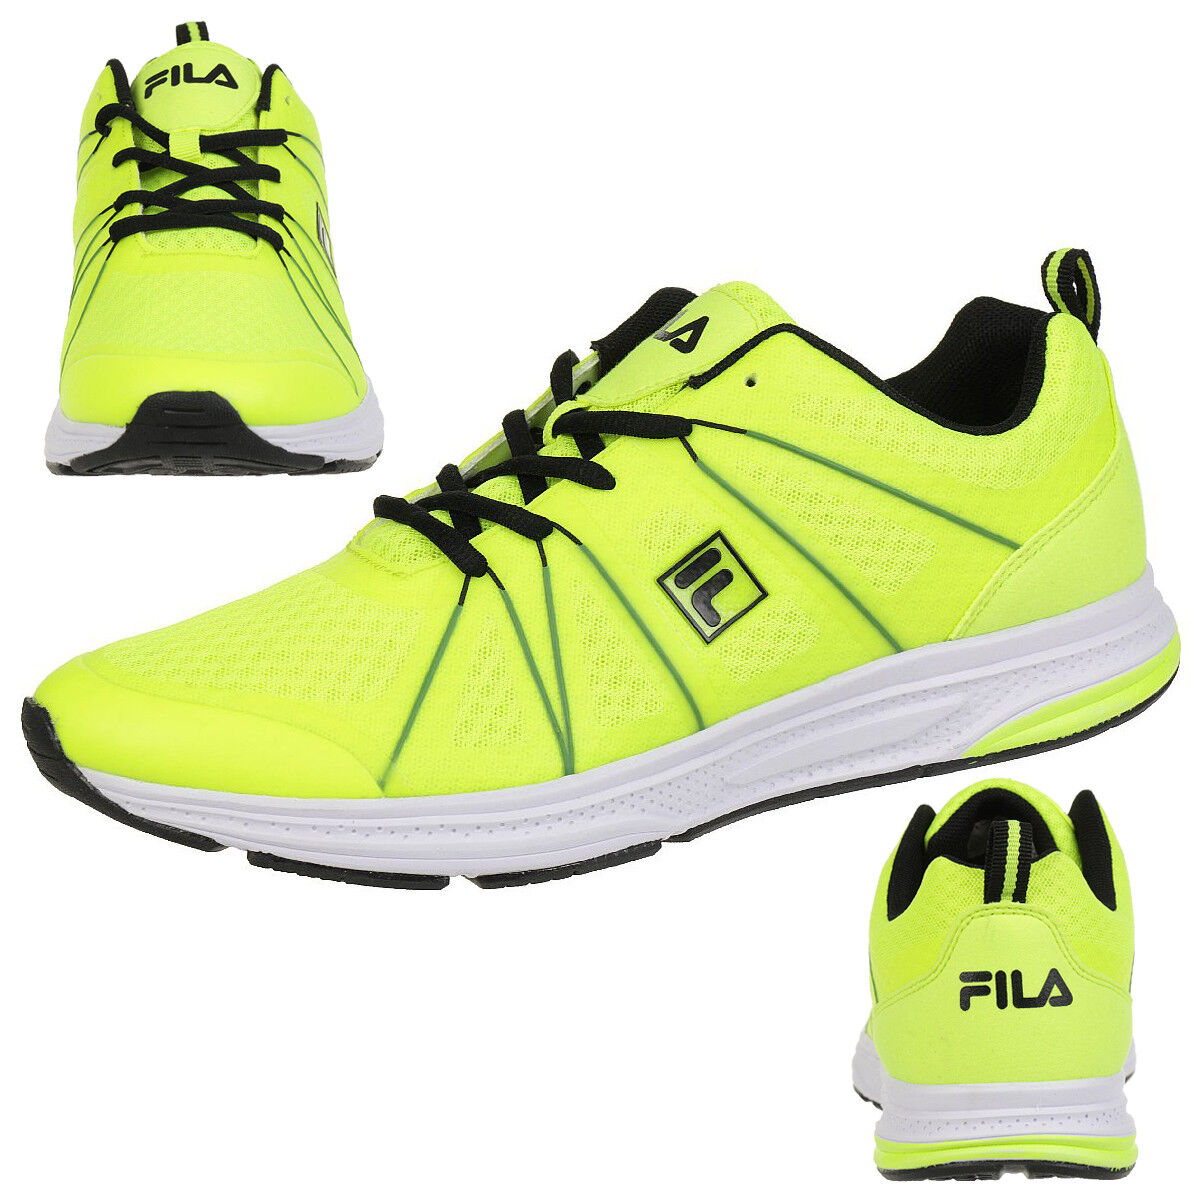 Fila Colt Low Run Laufschuh Running Men Sneakers yellow Comfort Foam